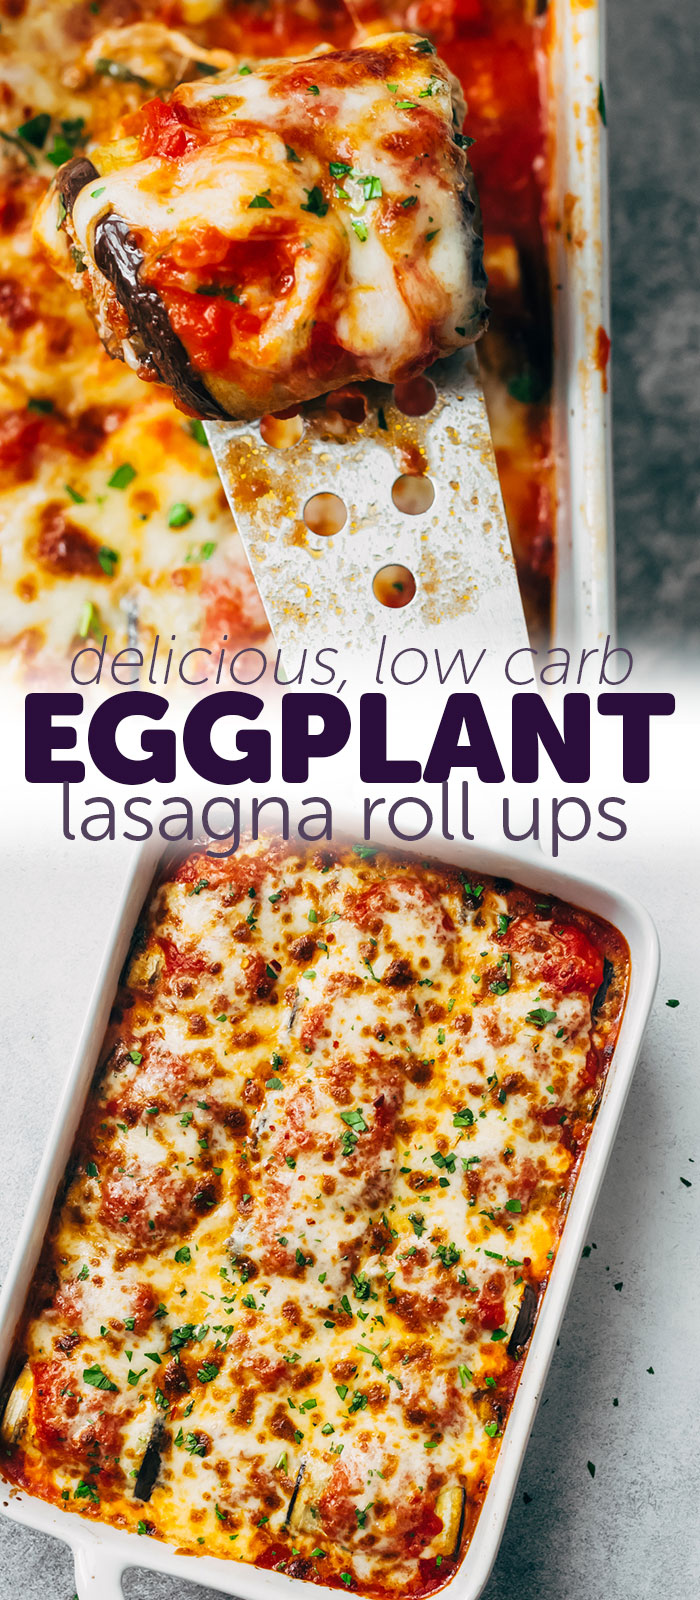 Low Carb Eggplant Lasagna Roll Ups - a healthy and lighter alternative to traditional Lasagna! #lowcarblasagna #eggplantlasagna #eggplantrollups #eggplantlasagnarollups #lowcarbdinnerideas #dinnerrecipes #lowcarbrecipes | Littlespicejar.com